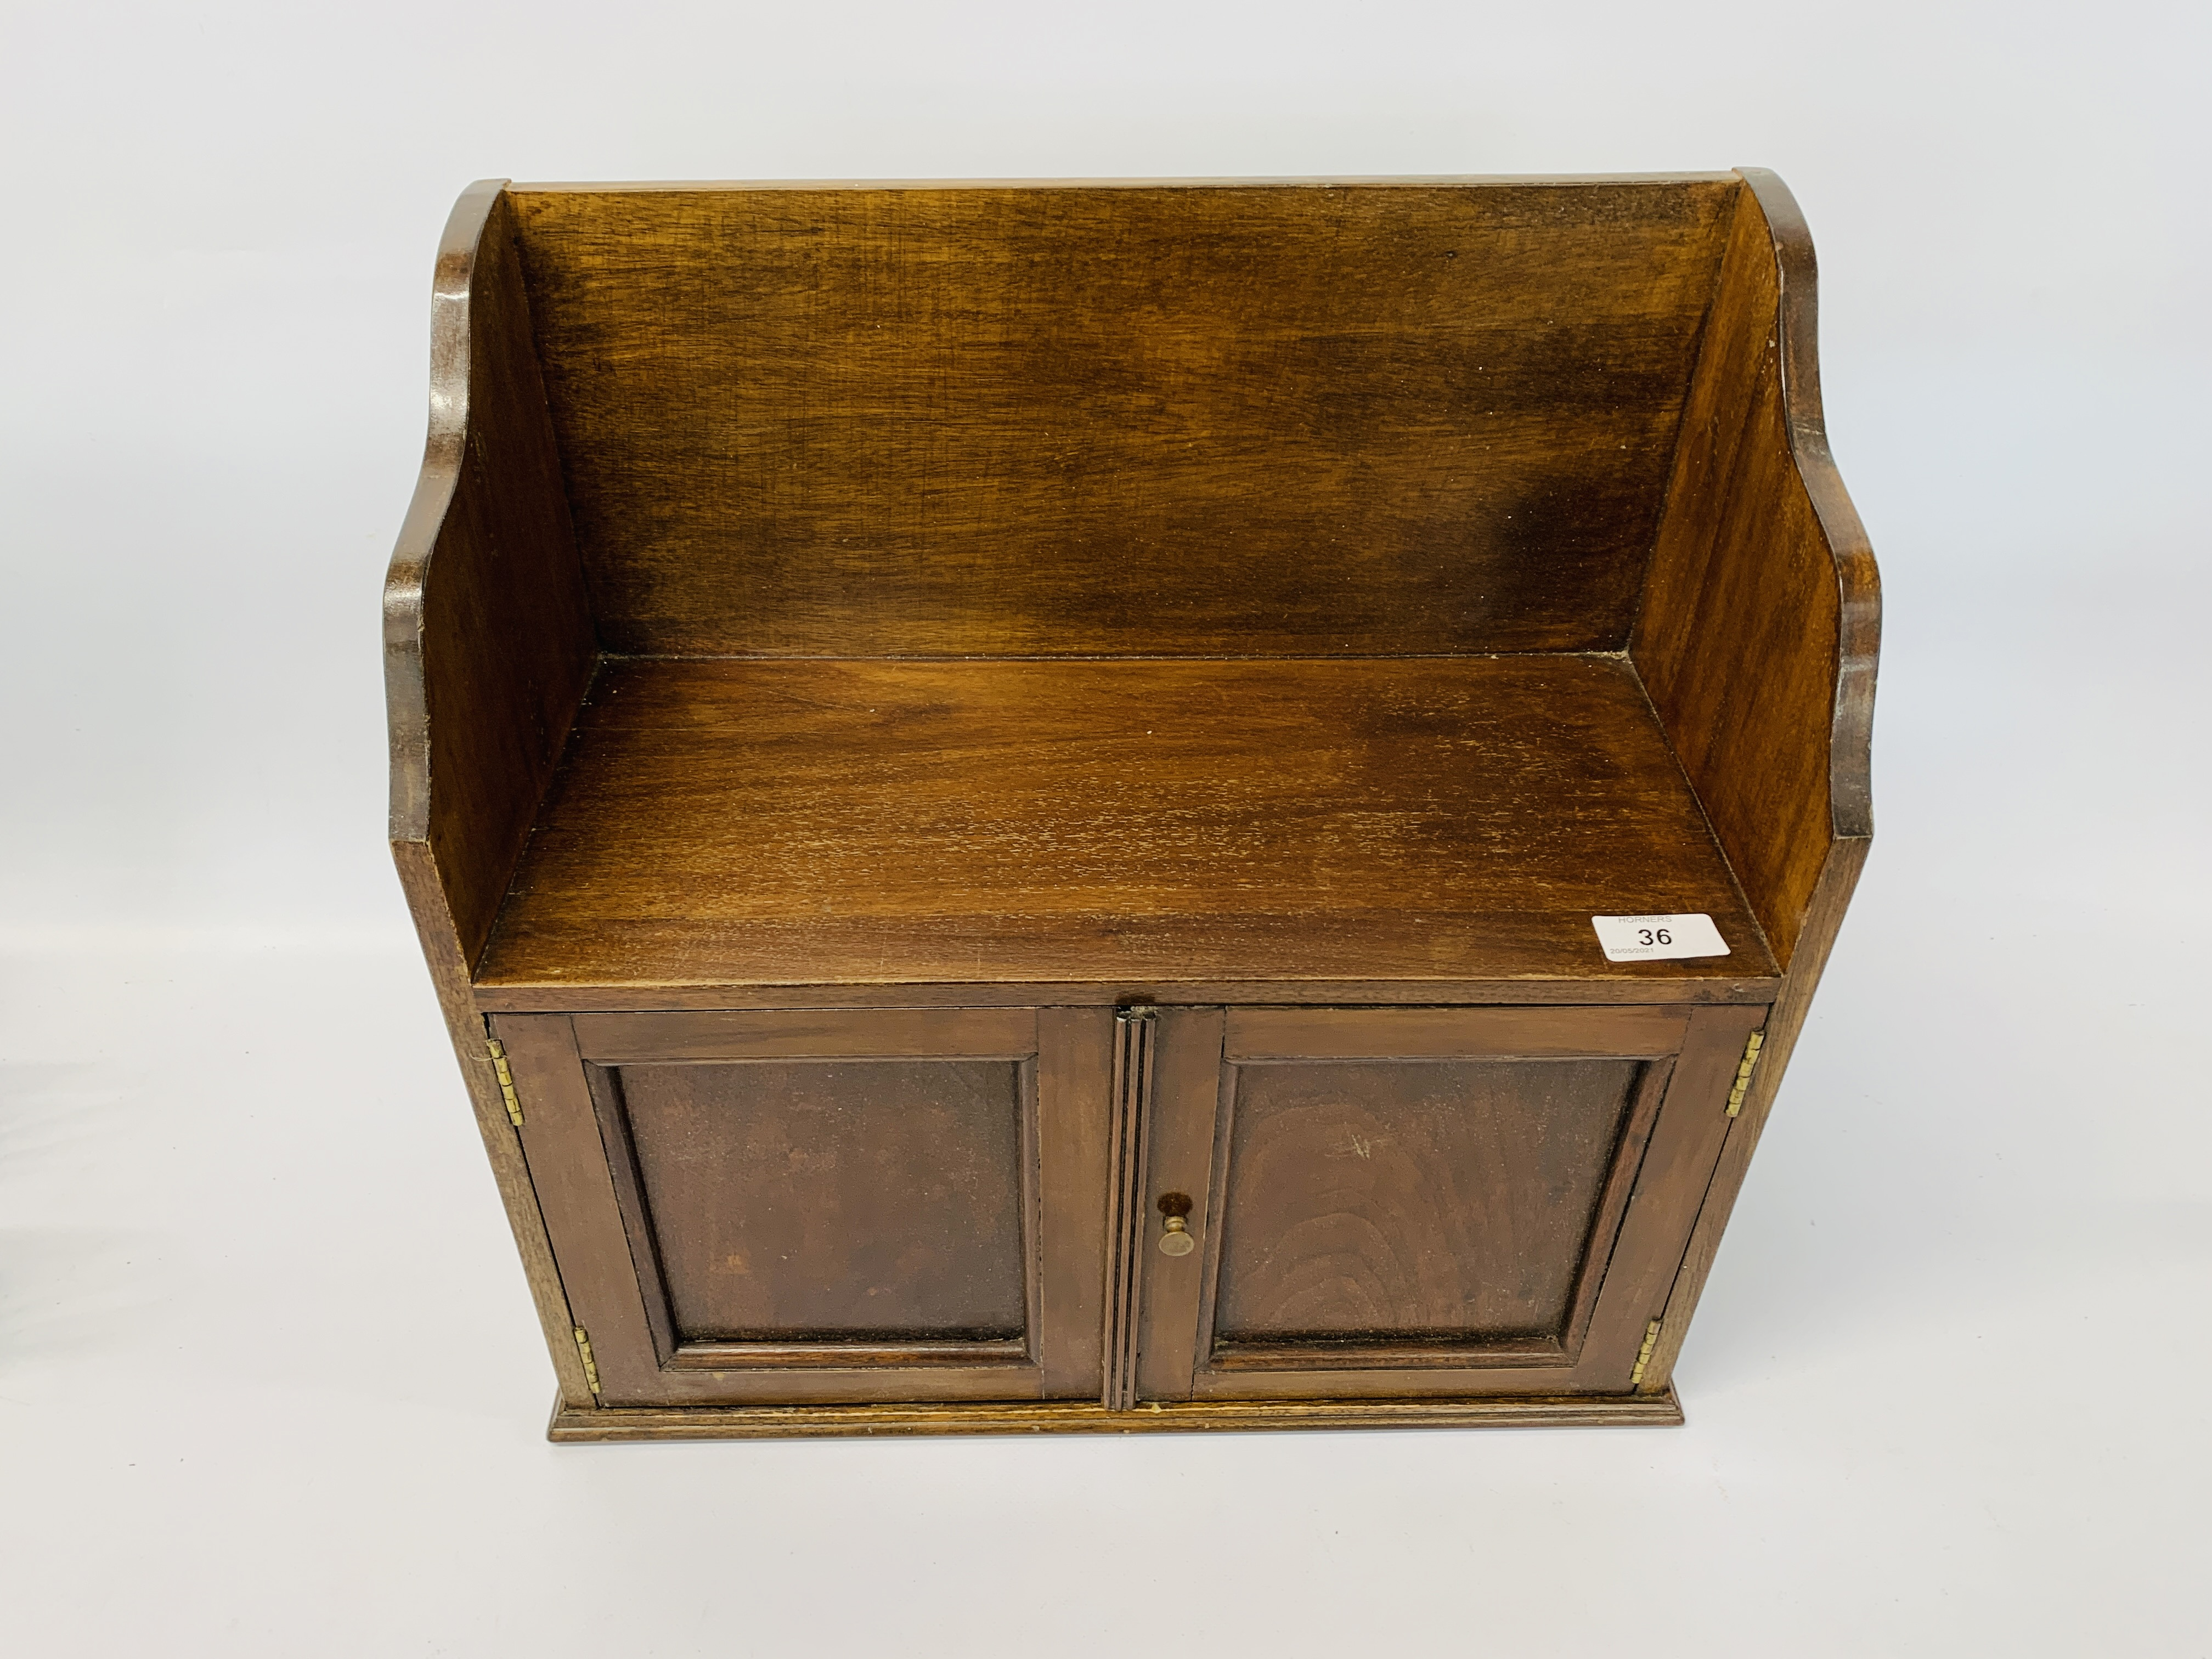 CARVED OAK WALL BRACKET ALONG WITH A VINTAGE MAHOGANY WALL CABINET - Image 2 of 8